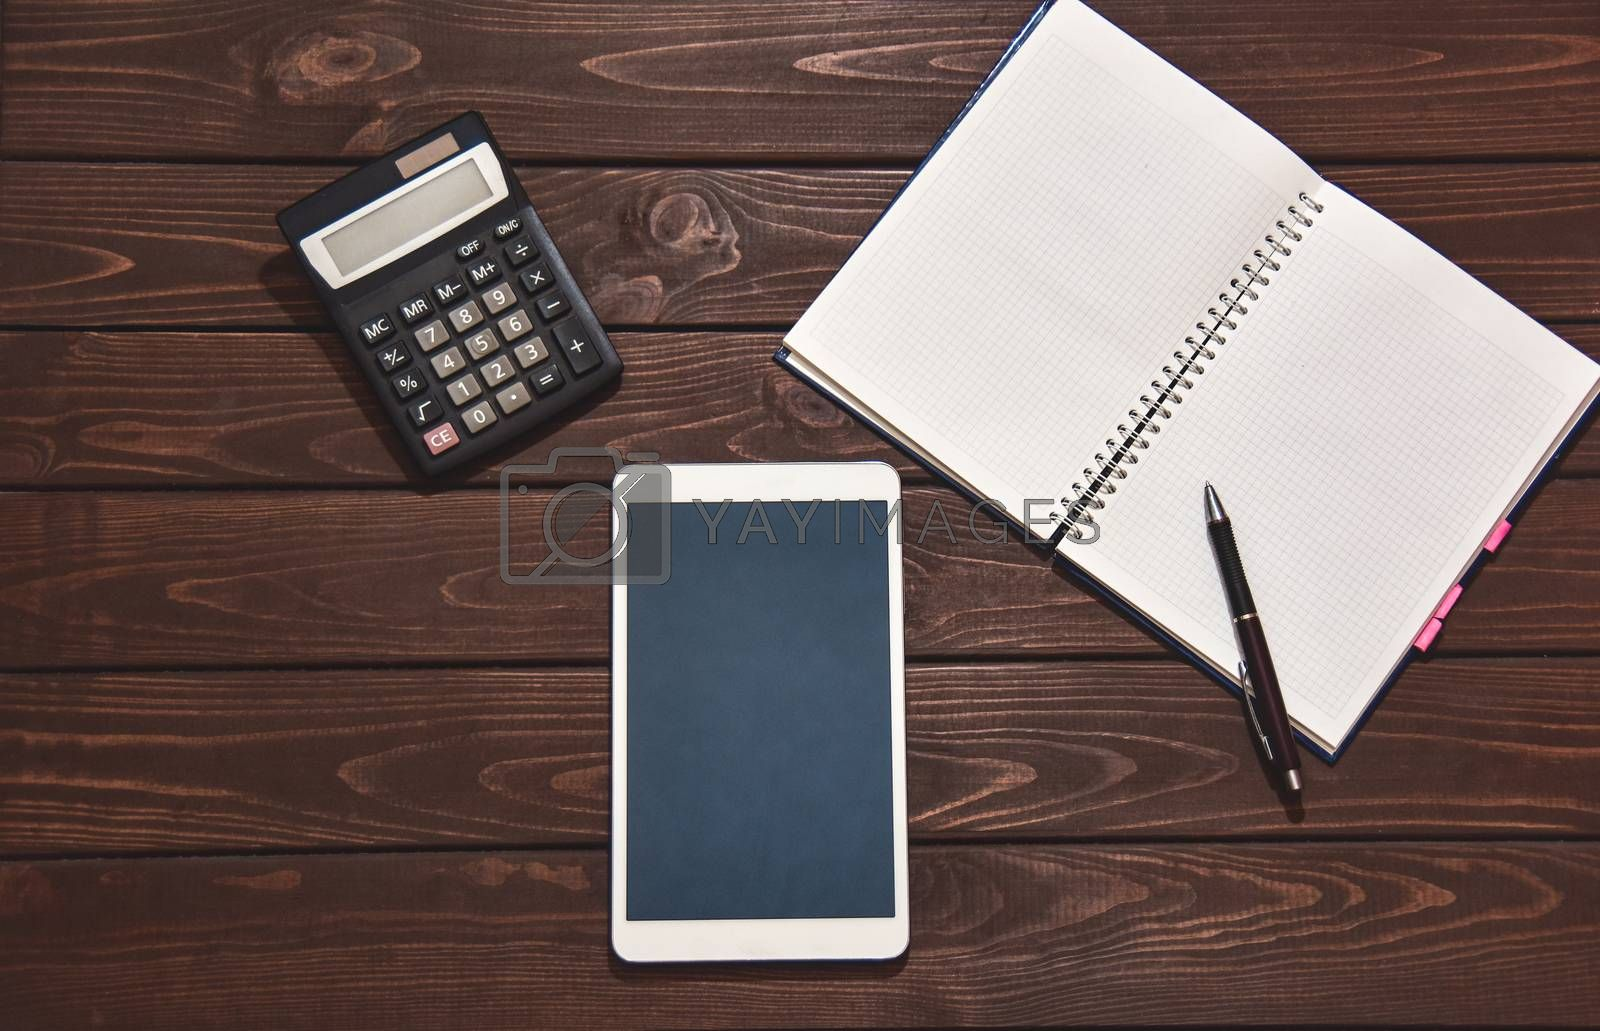 Top view of tablet, smartphone, calculator, notepad on wooden background, planning personal income, financial concept. typing on the calculator for money plan.